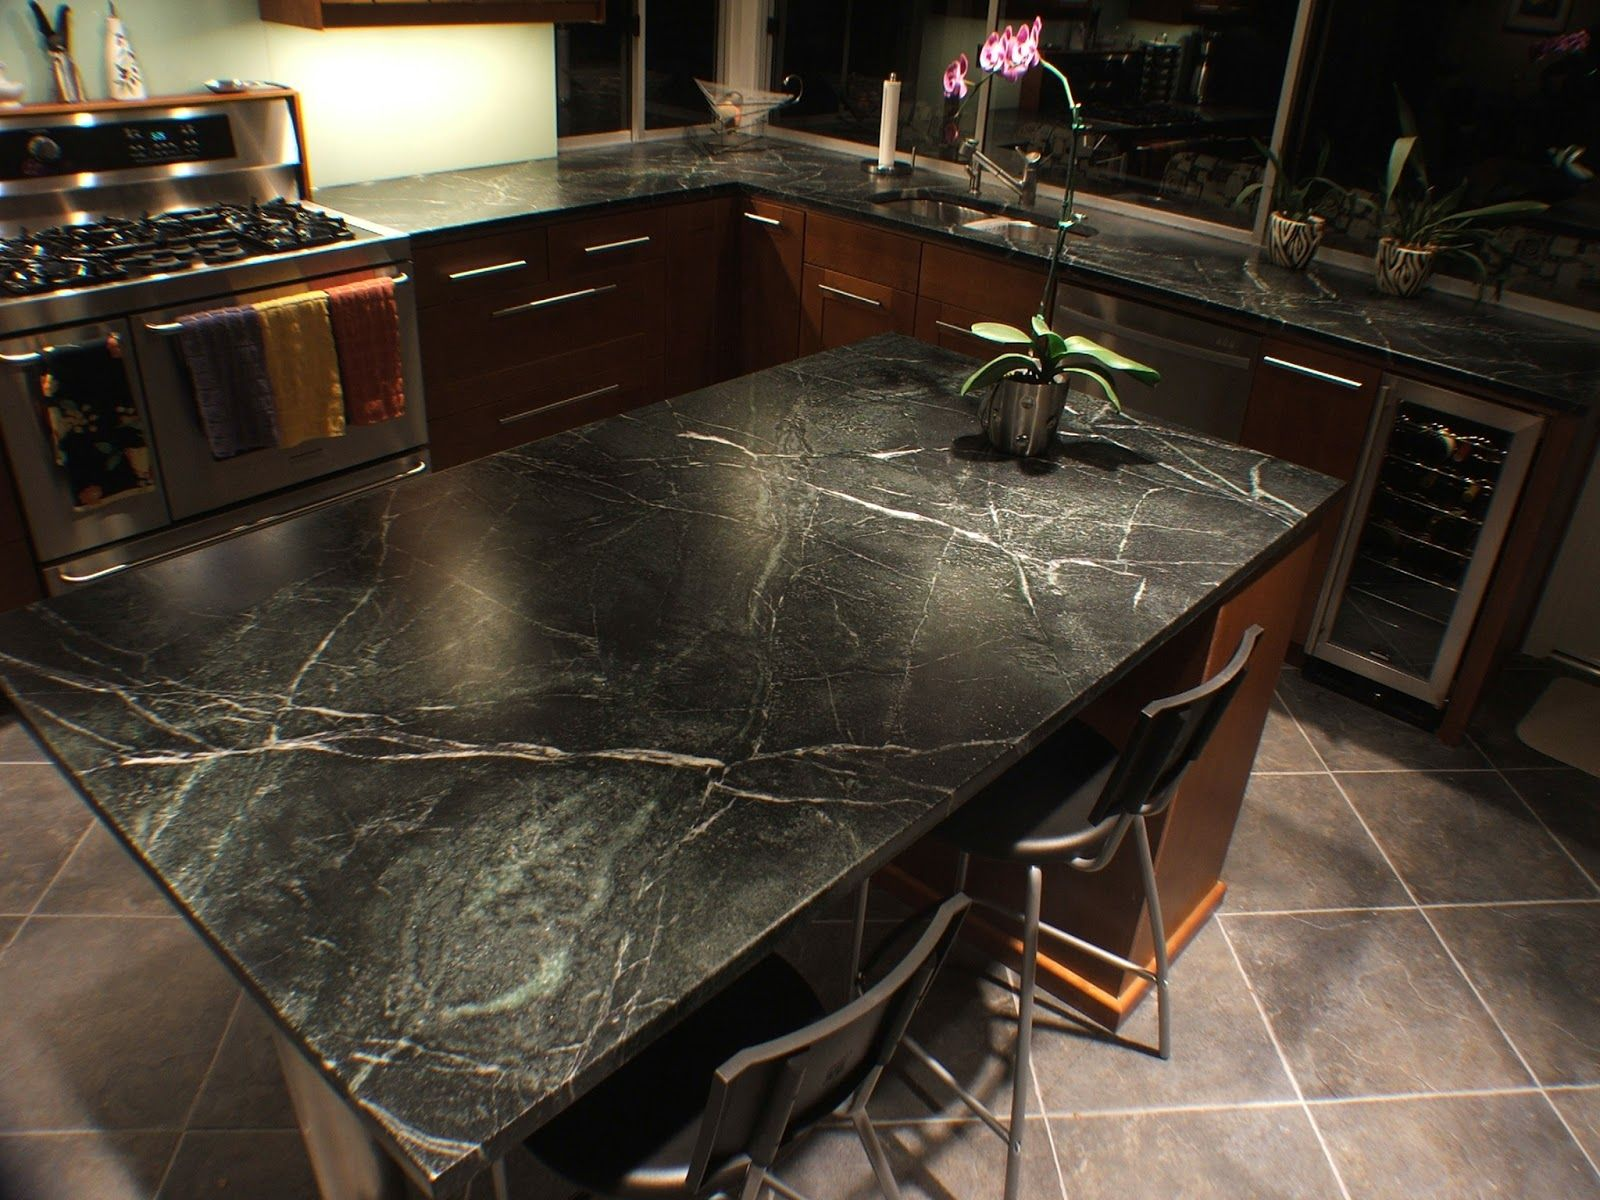 Soapstone no oil soapstone maintenance is fast easy mid classy black like granite patterns soapstone countertops with brown polished kitchen cabinet on diagonal gray tile floors in midcentury kitchen ideas doublecrazyfo Gallery